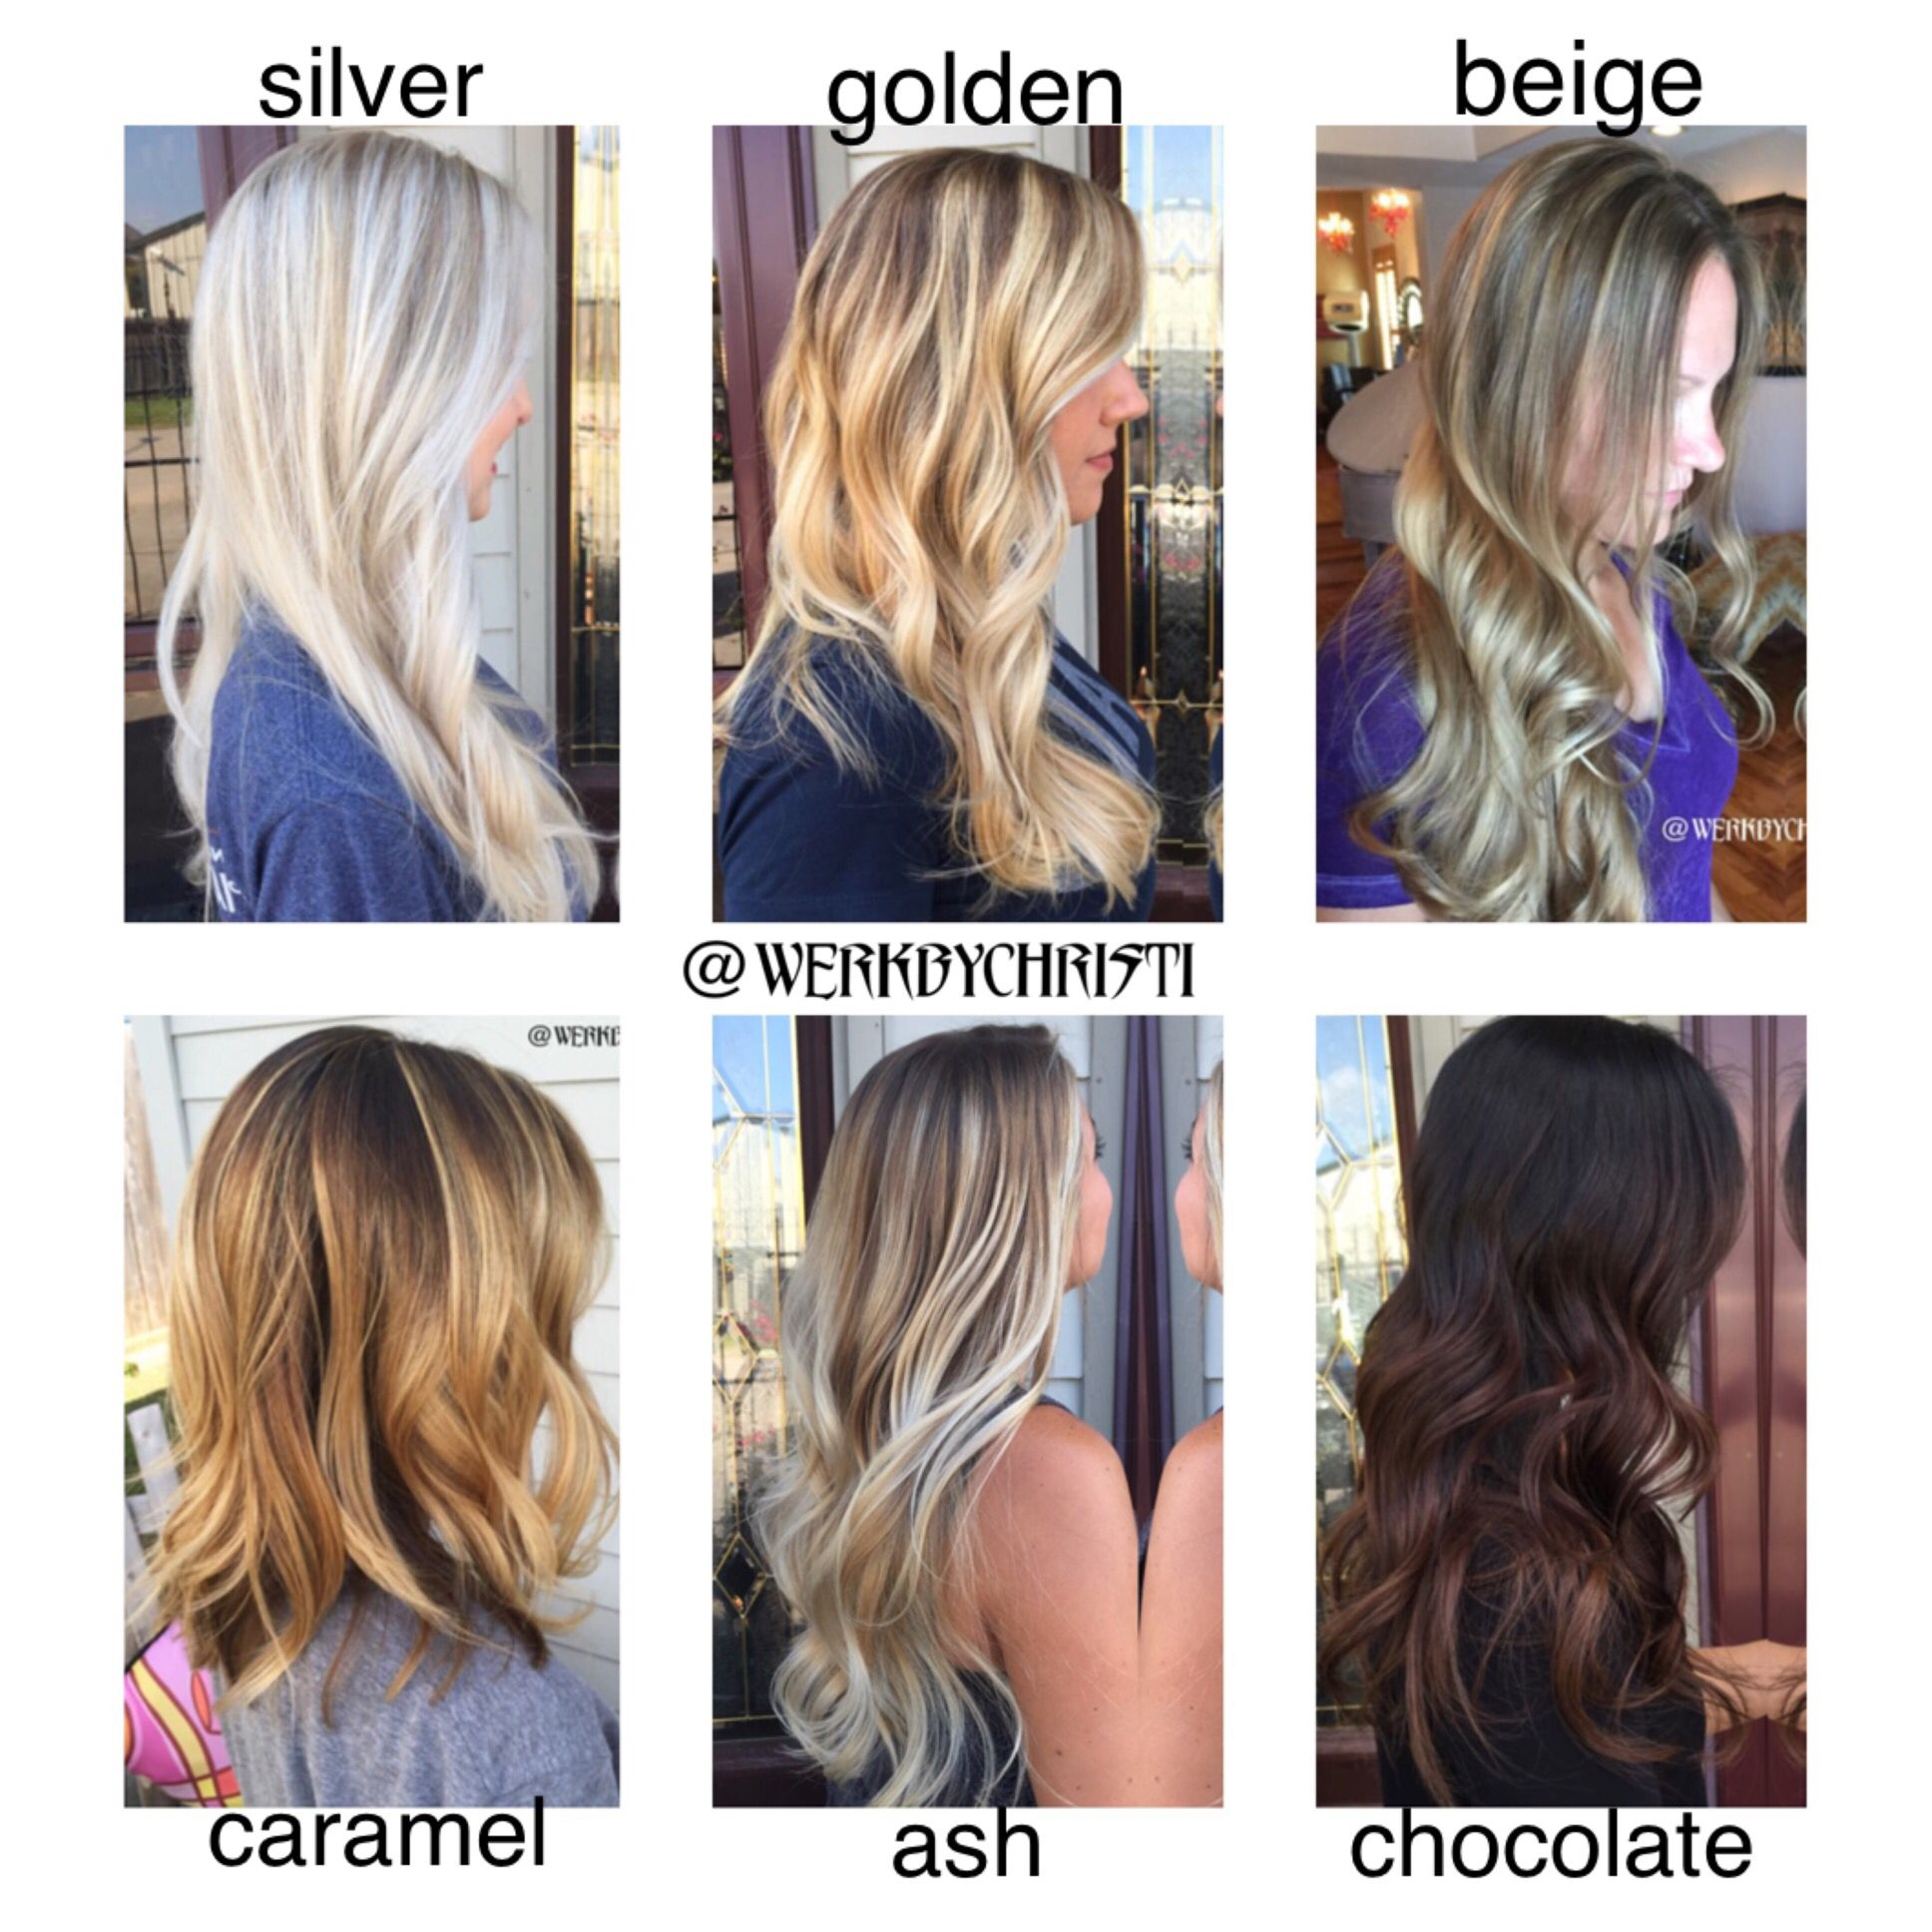 hair color chart. balayage ombré. different tones and shades